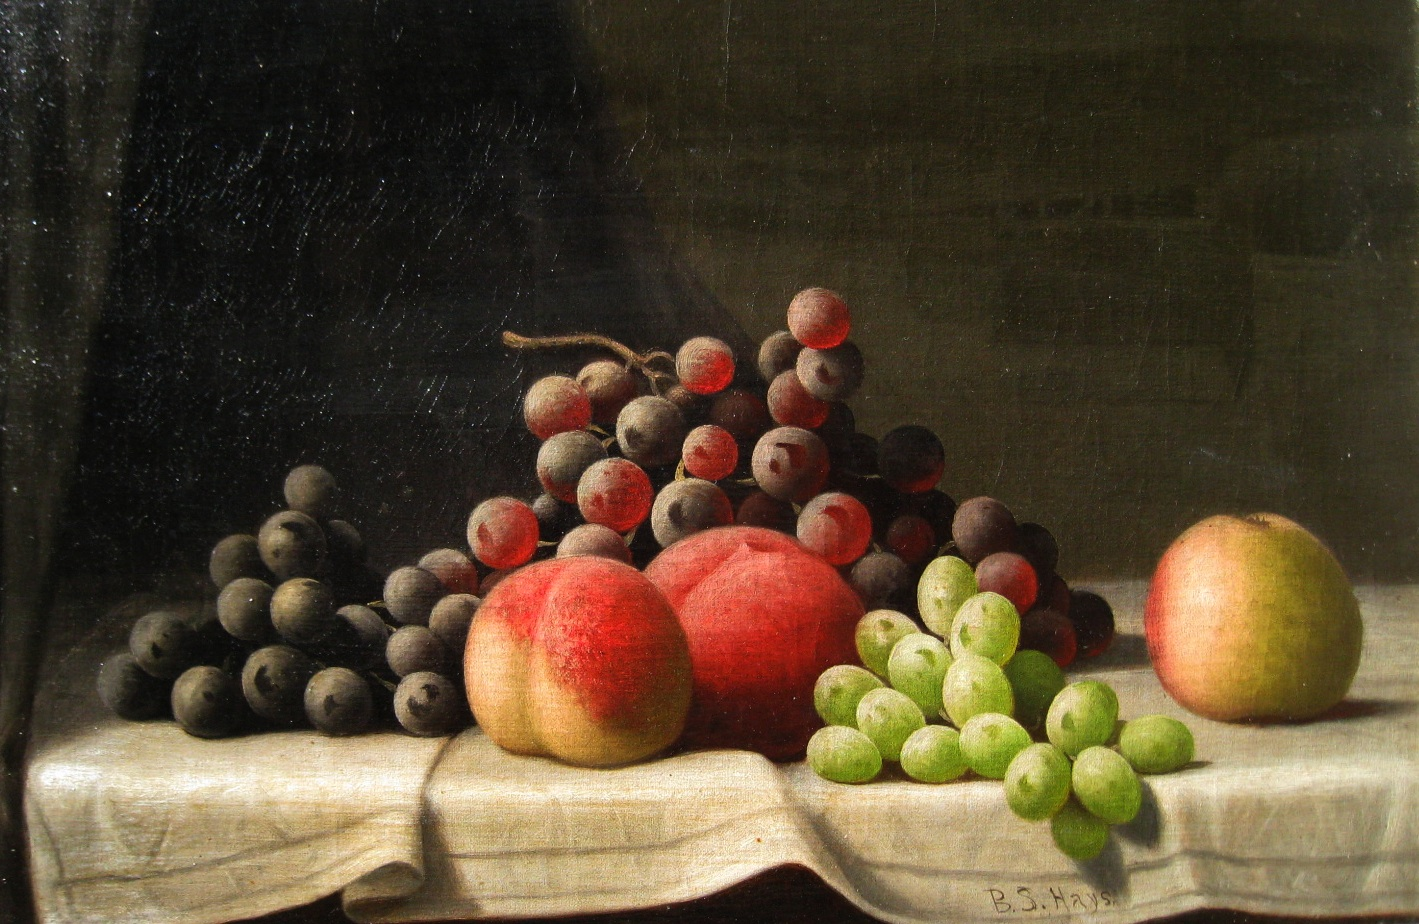 haysbarton-peachesgrapes-cropped